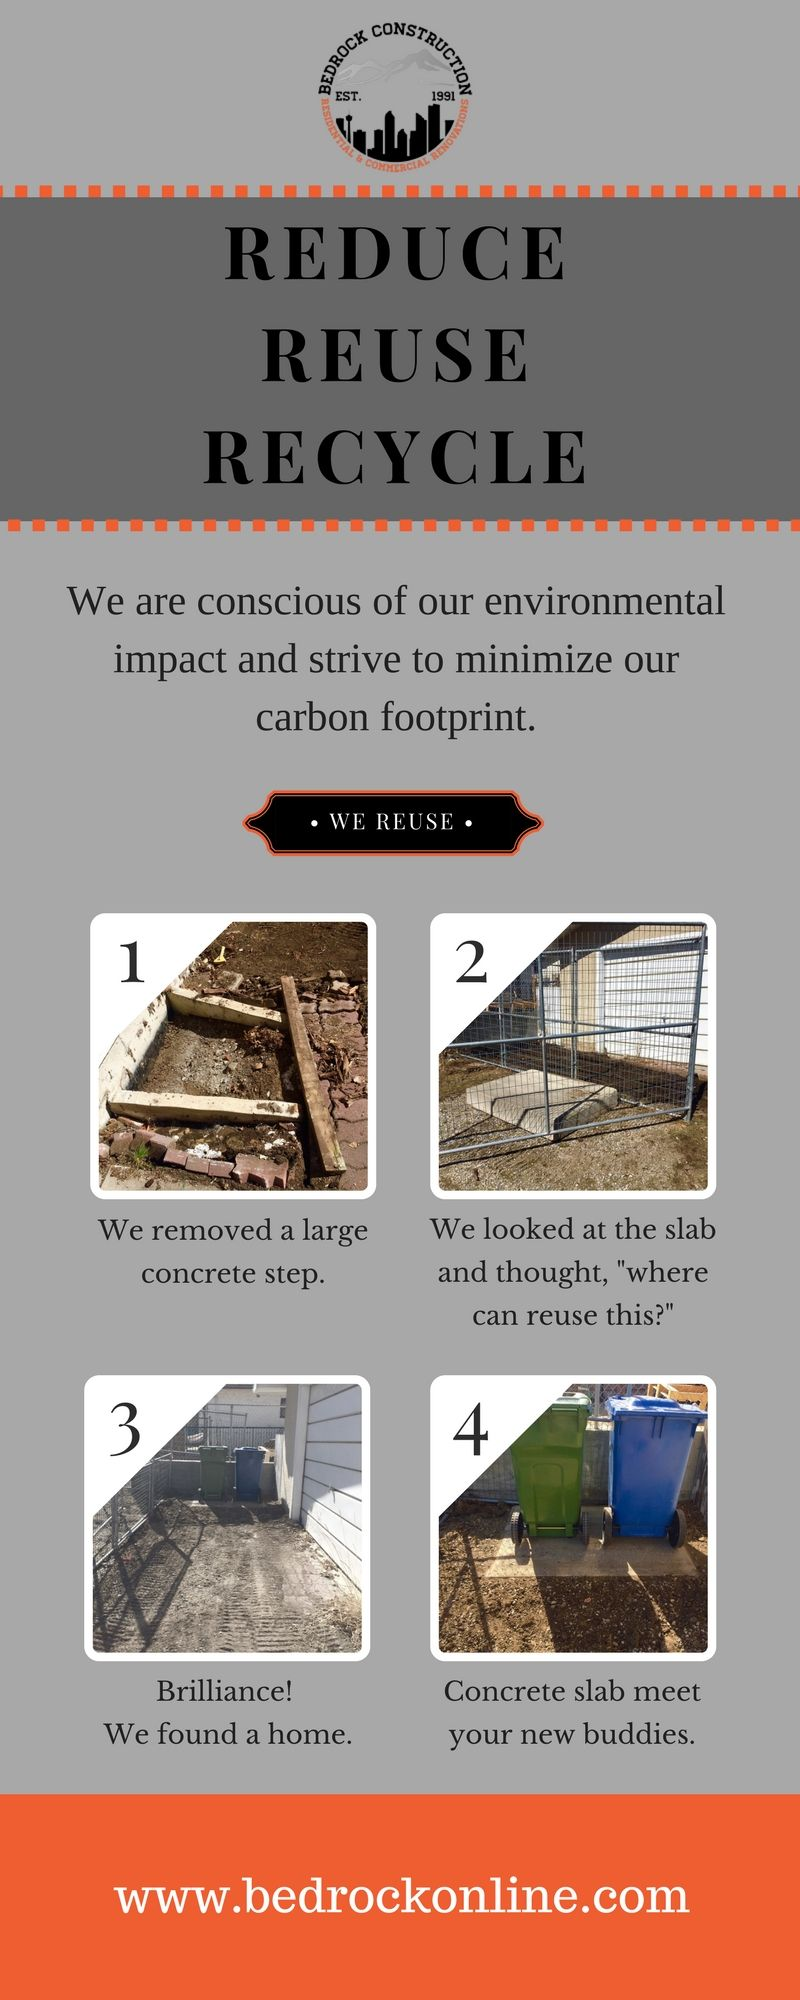 Bedrock Construction Is Conscious Of Our Environmental Impact And Strives To Minimize Its Carbon Footprint Carbon Footprint Bedrock Environmental Impact